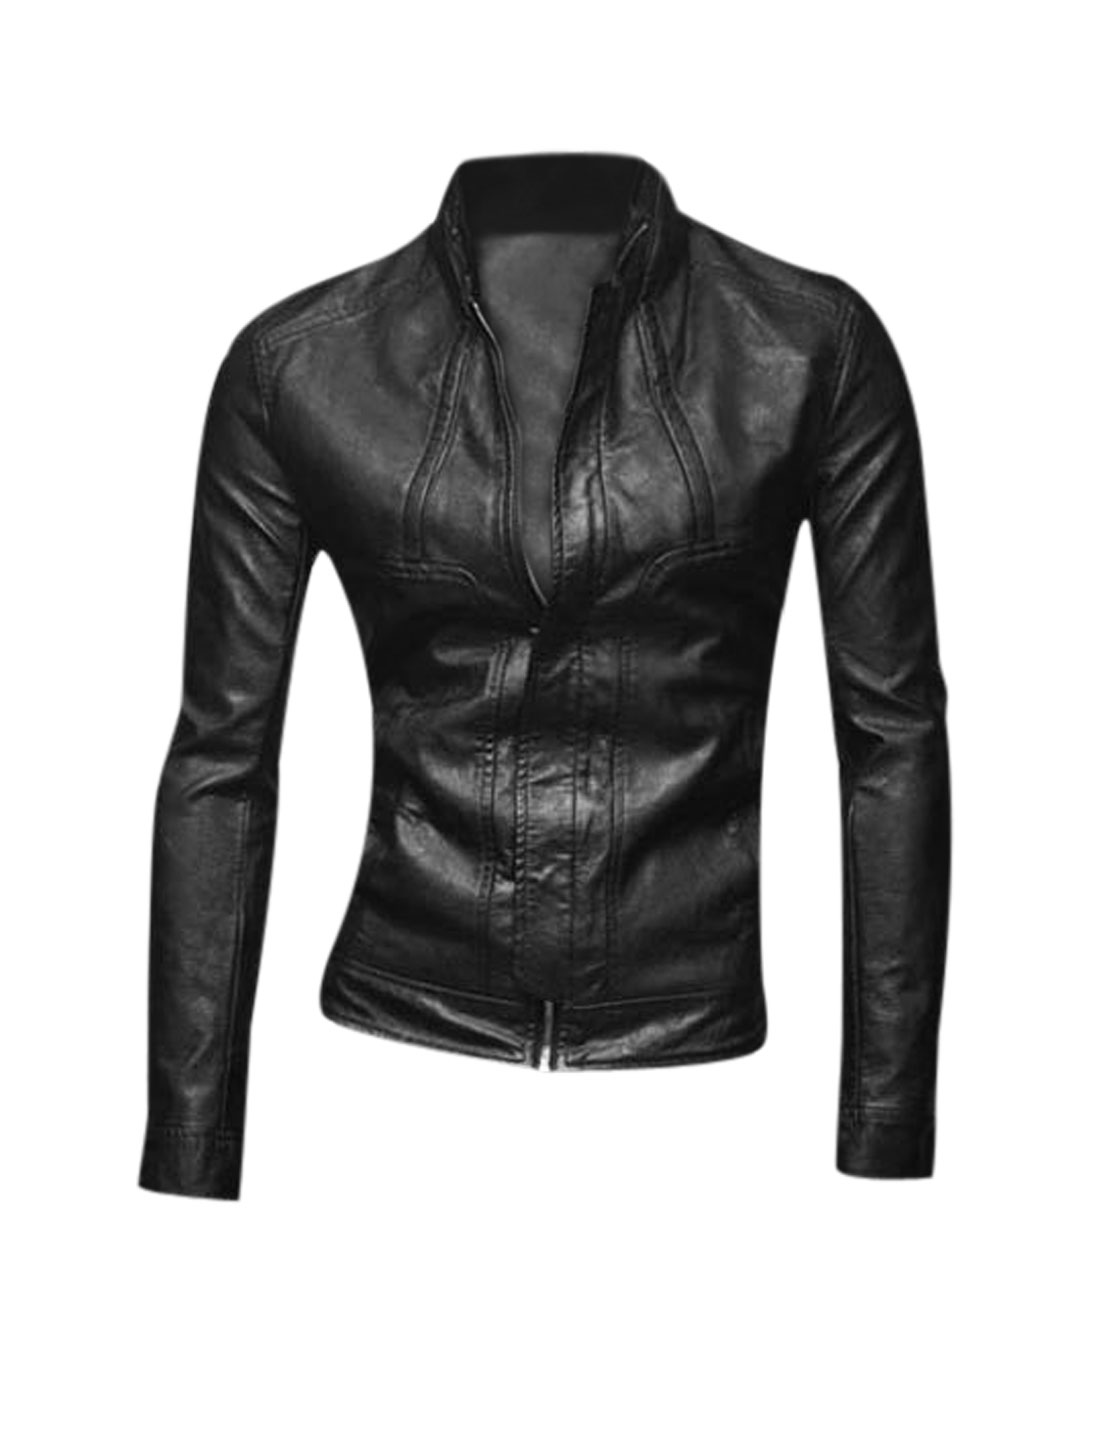 Stand Collar Zip Closed Trendy Imitation Leather Jacket for Men Black M